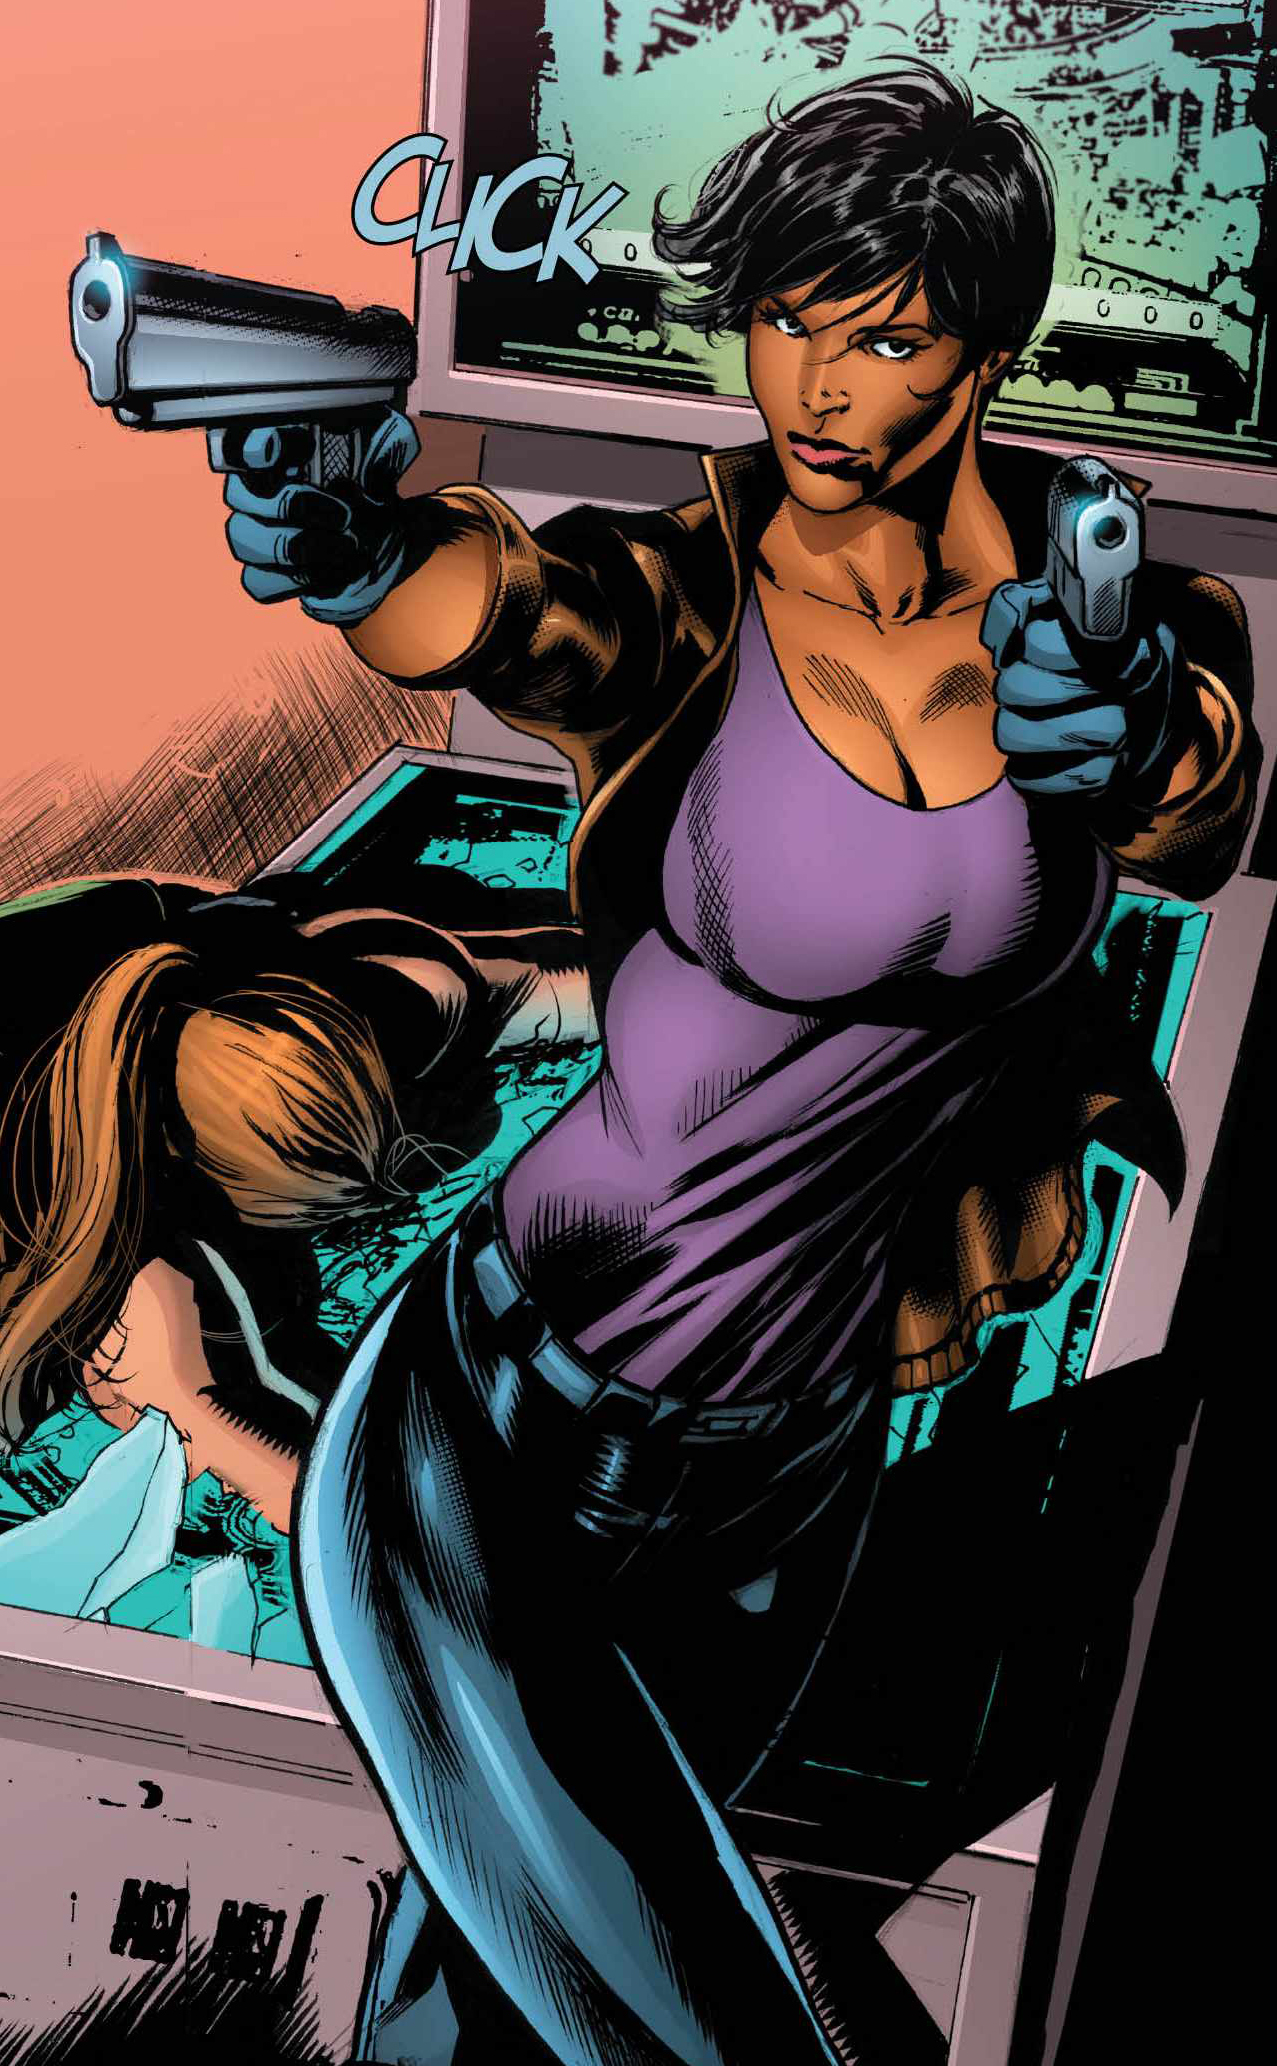 http://davescorneroftheuniverse.files.wordpress.com/2013/12/amanda-waller-52.jpeg